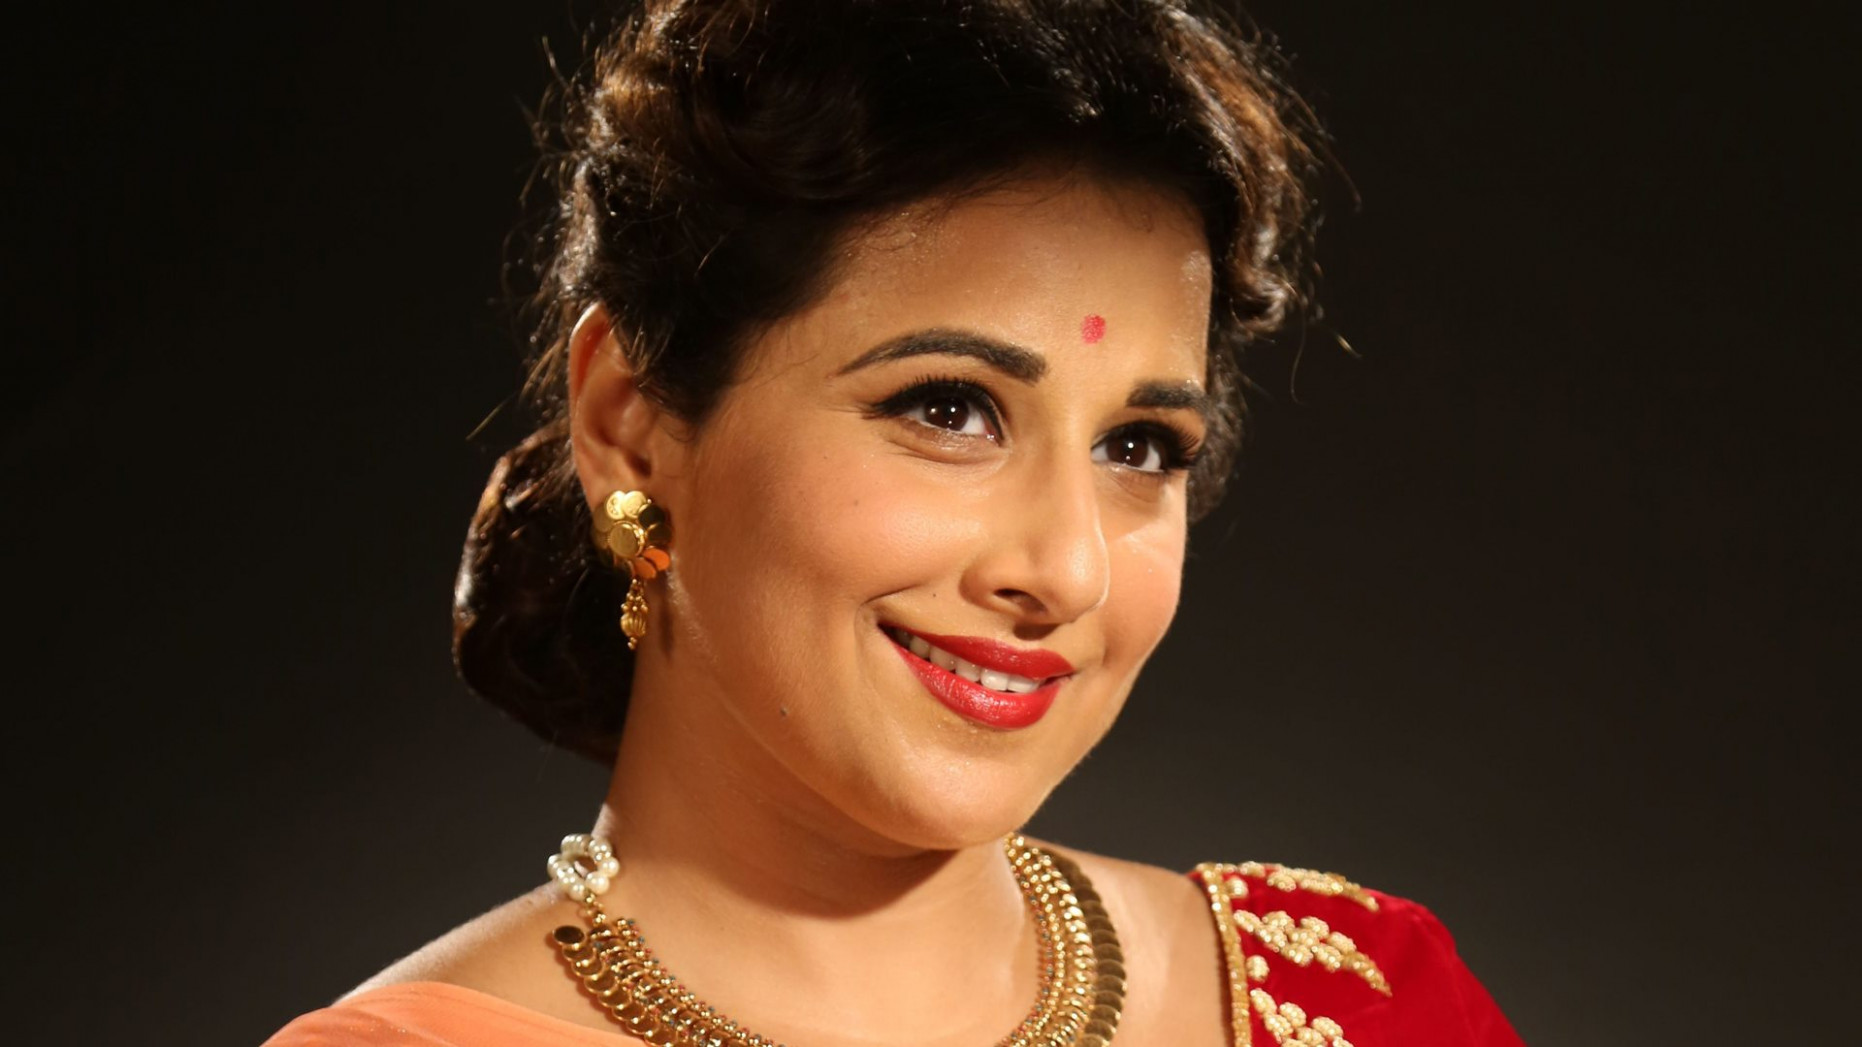 Vidya Balan Bollywood Actress Wallpapers